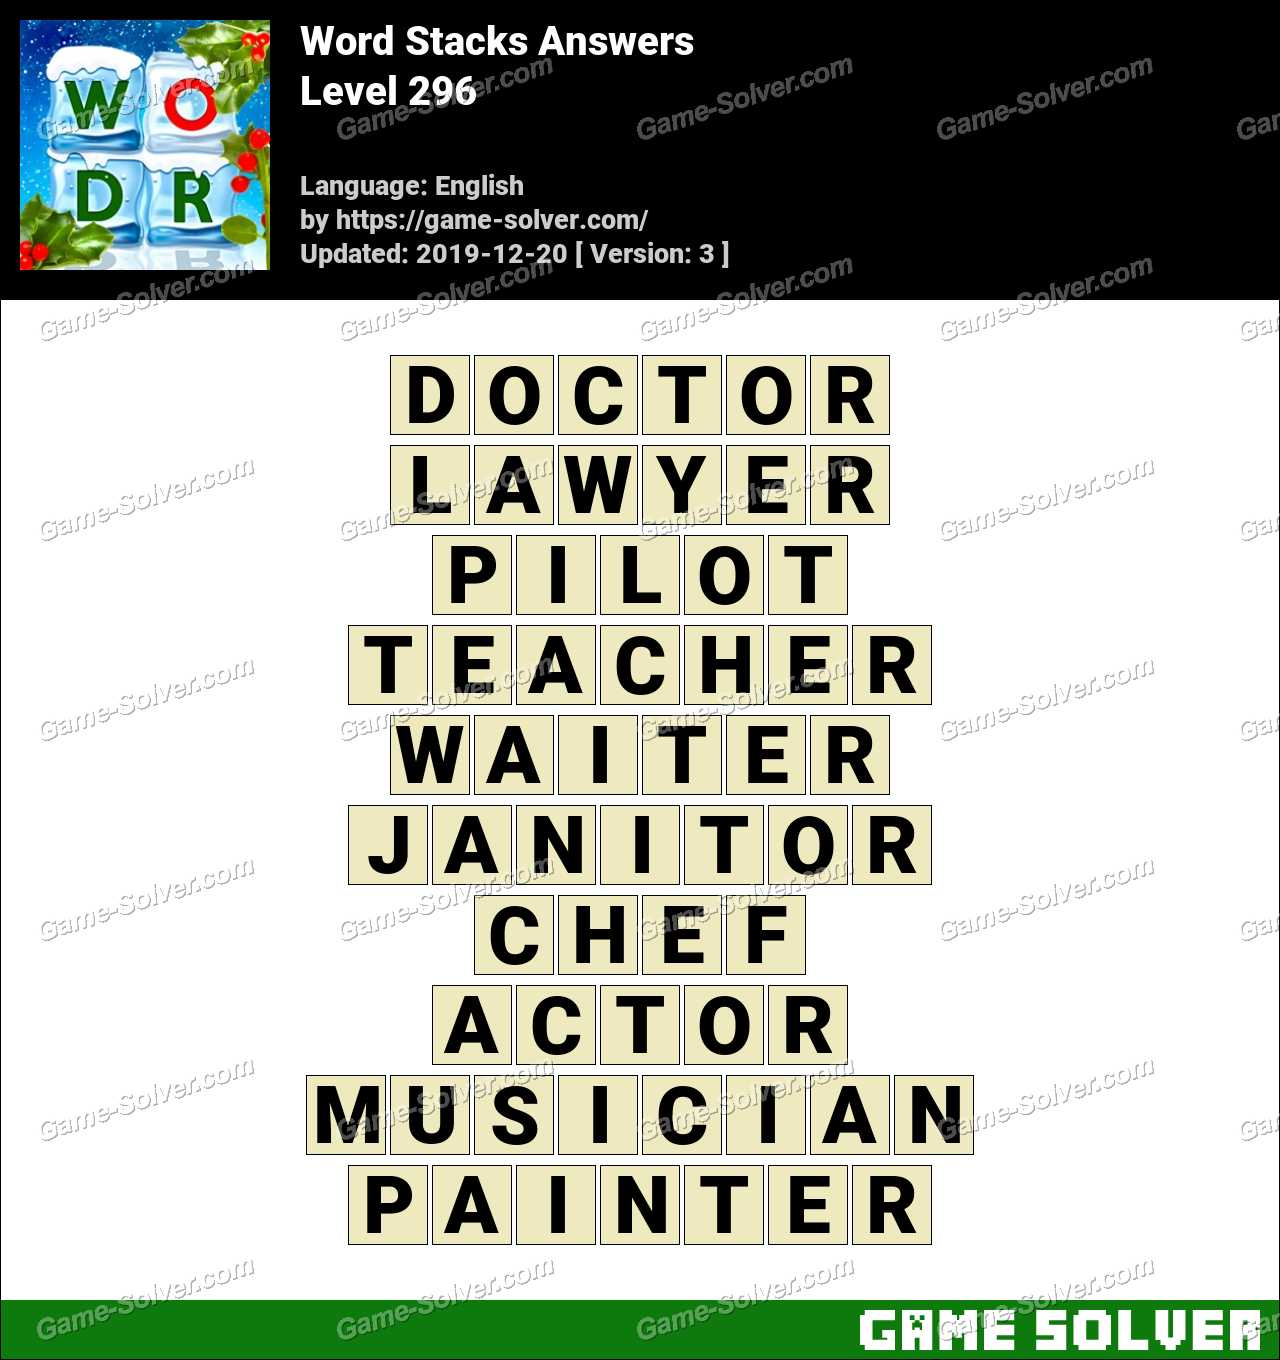 Word Stacks Level 296 Answers